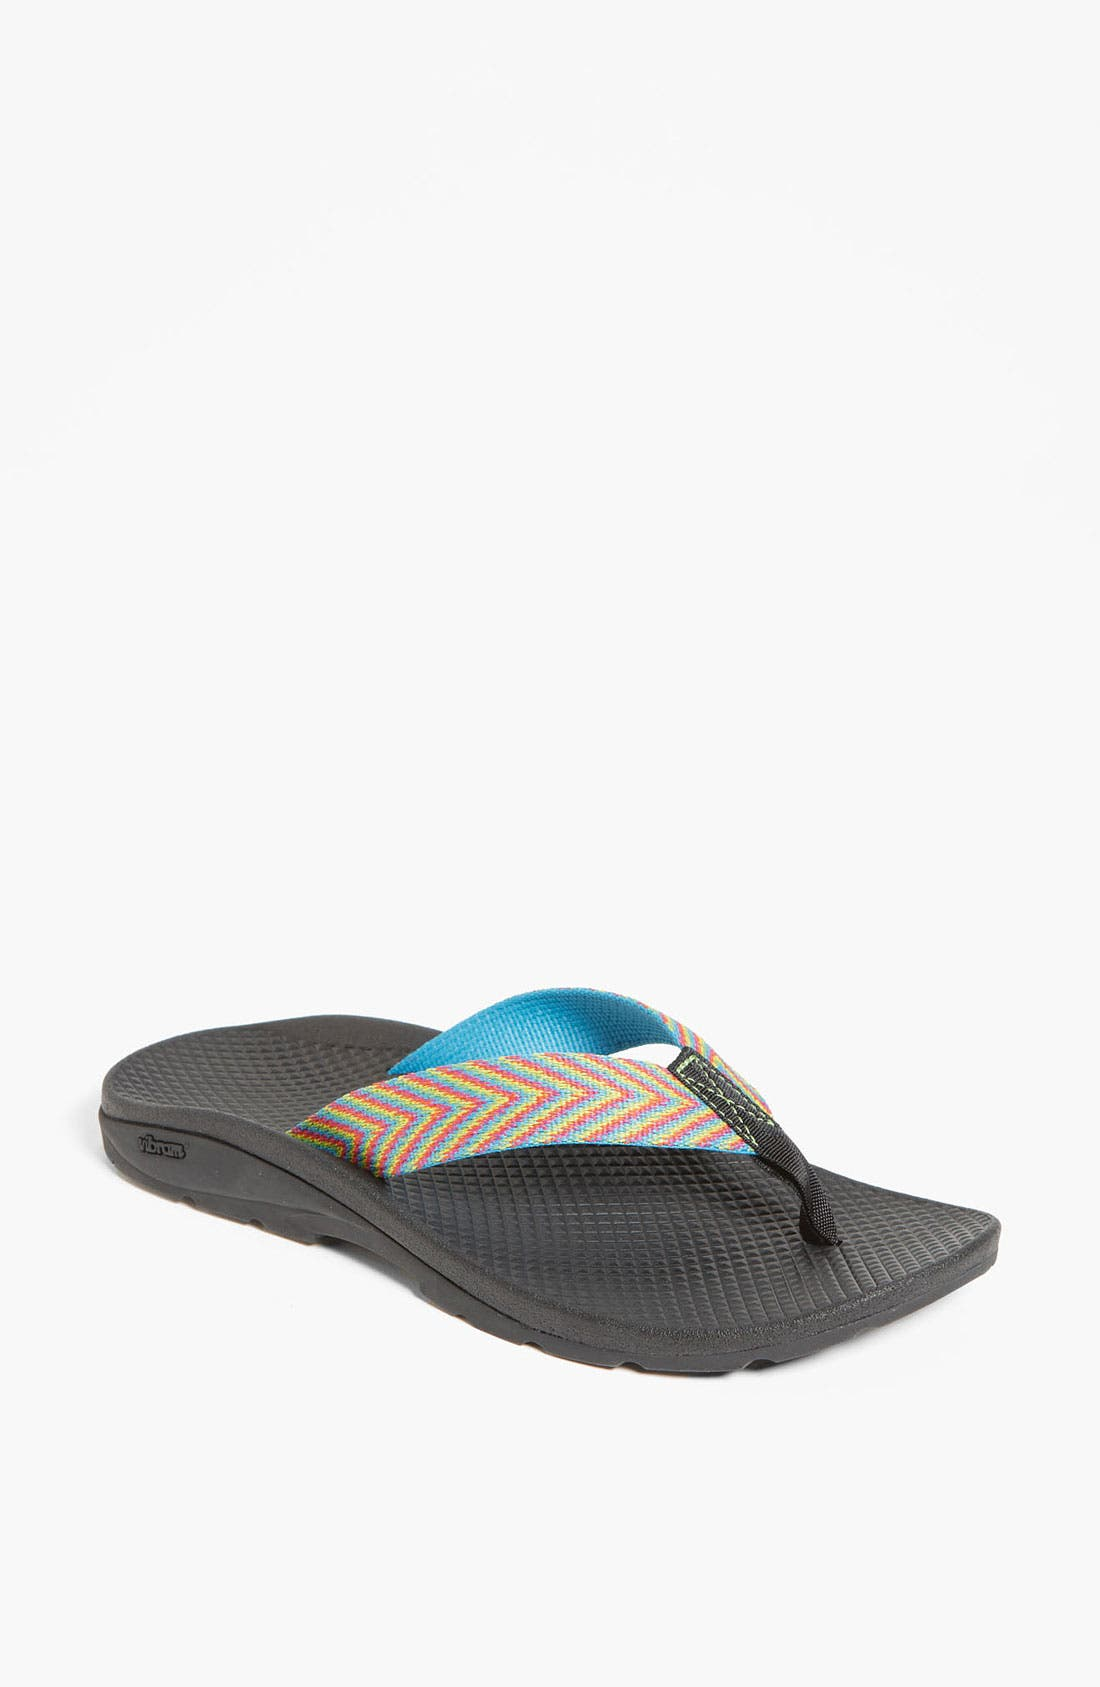 Alternate Image 1 Selected - Chaco 'Flip Vibe' Sandal